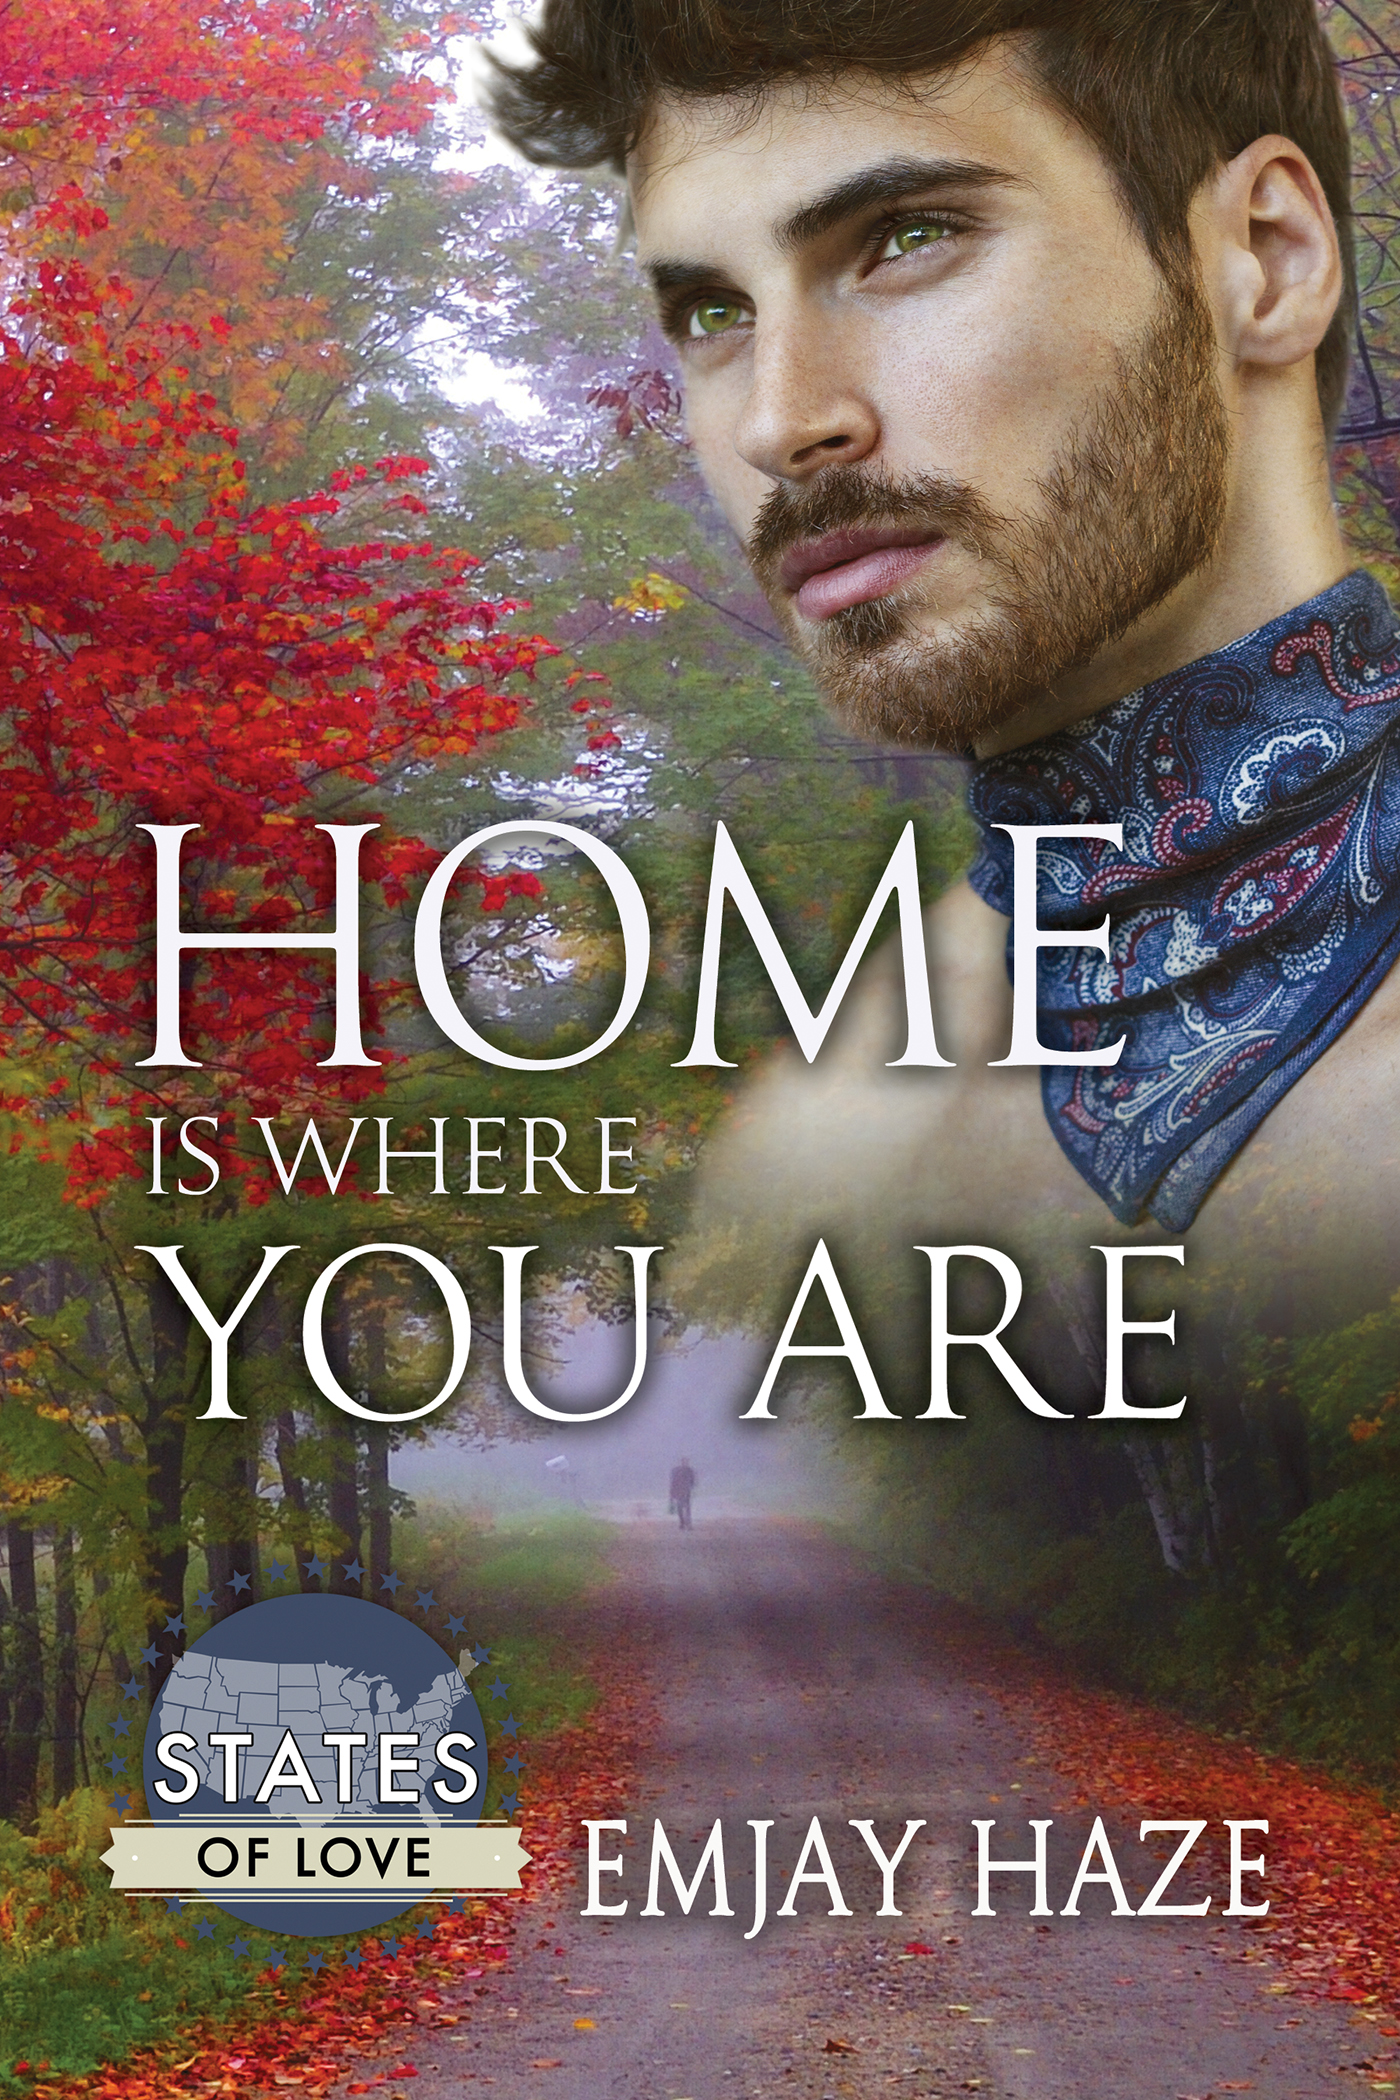 Guest Post and Giveaway: Home Is Where You Are by Emjay Haze